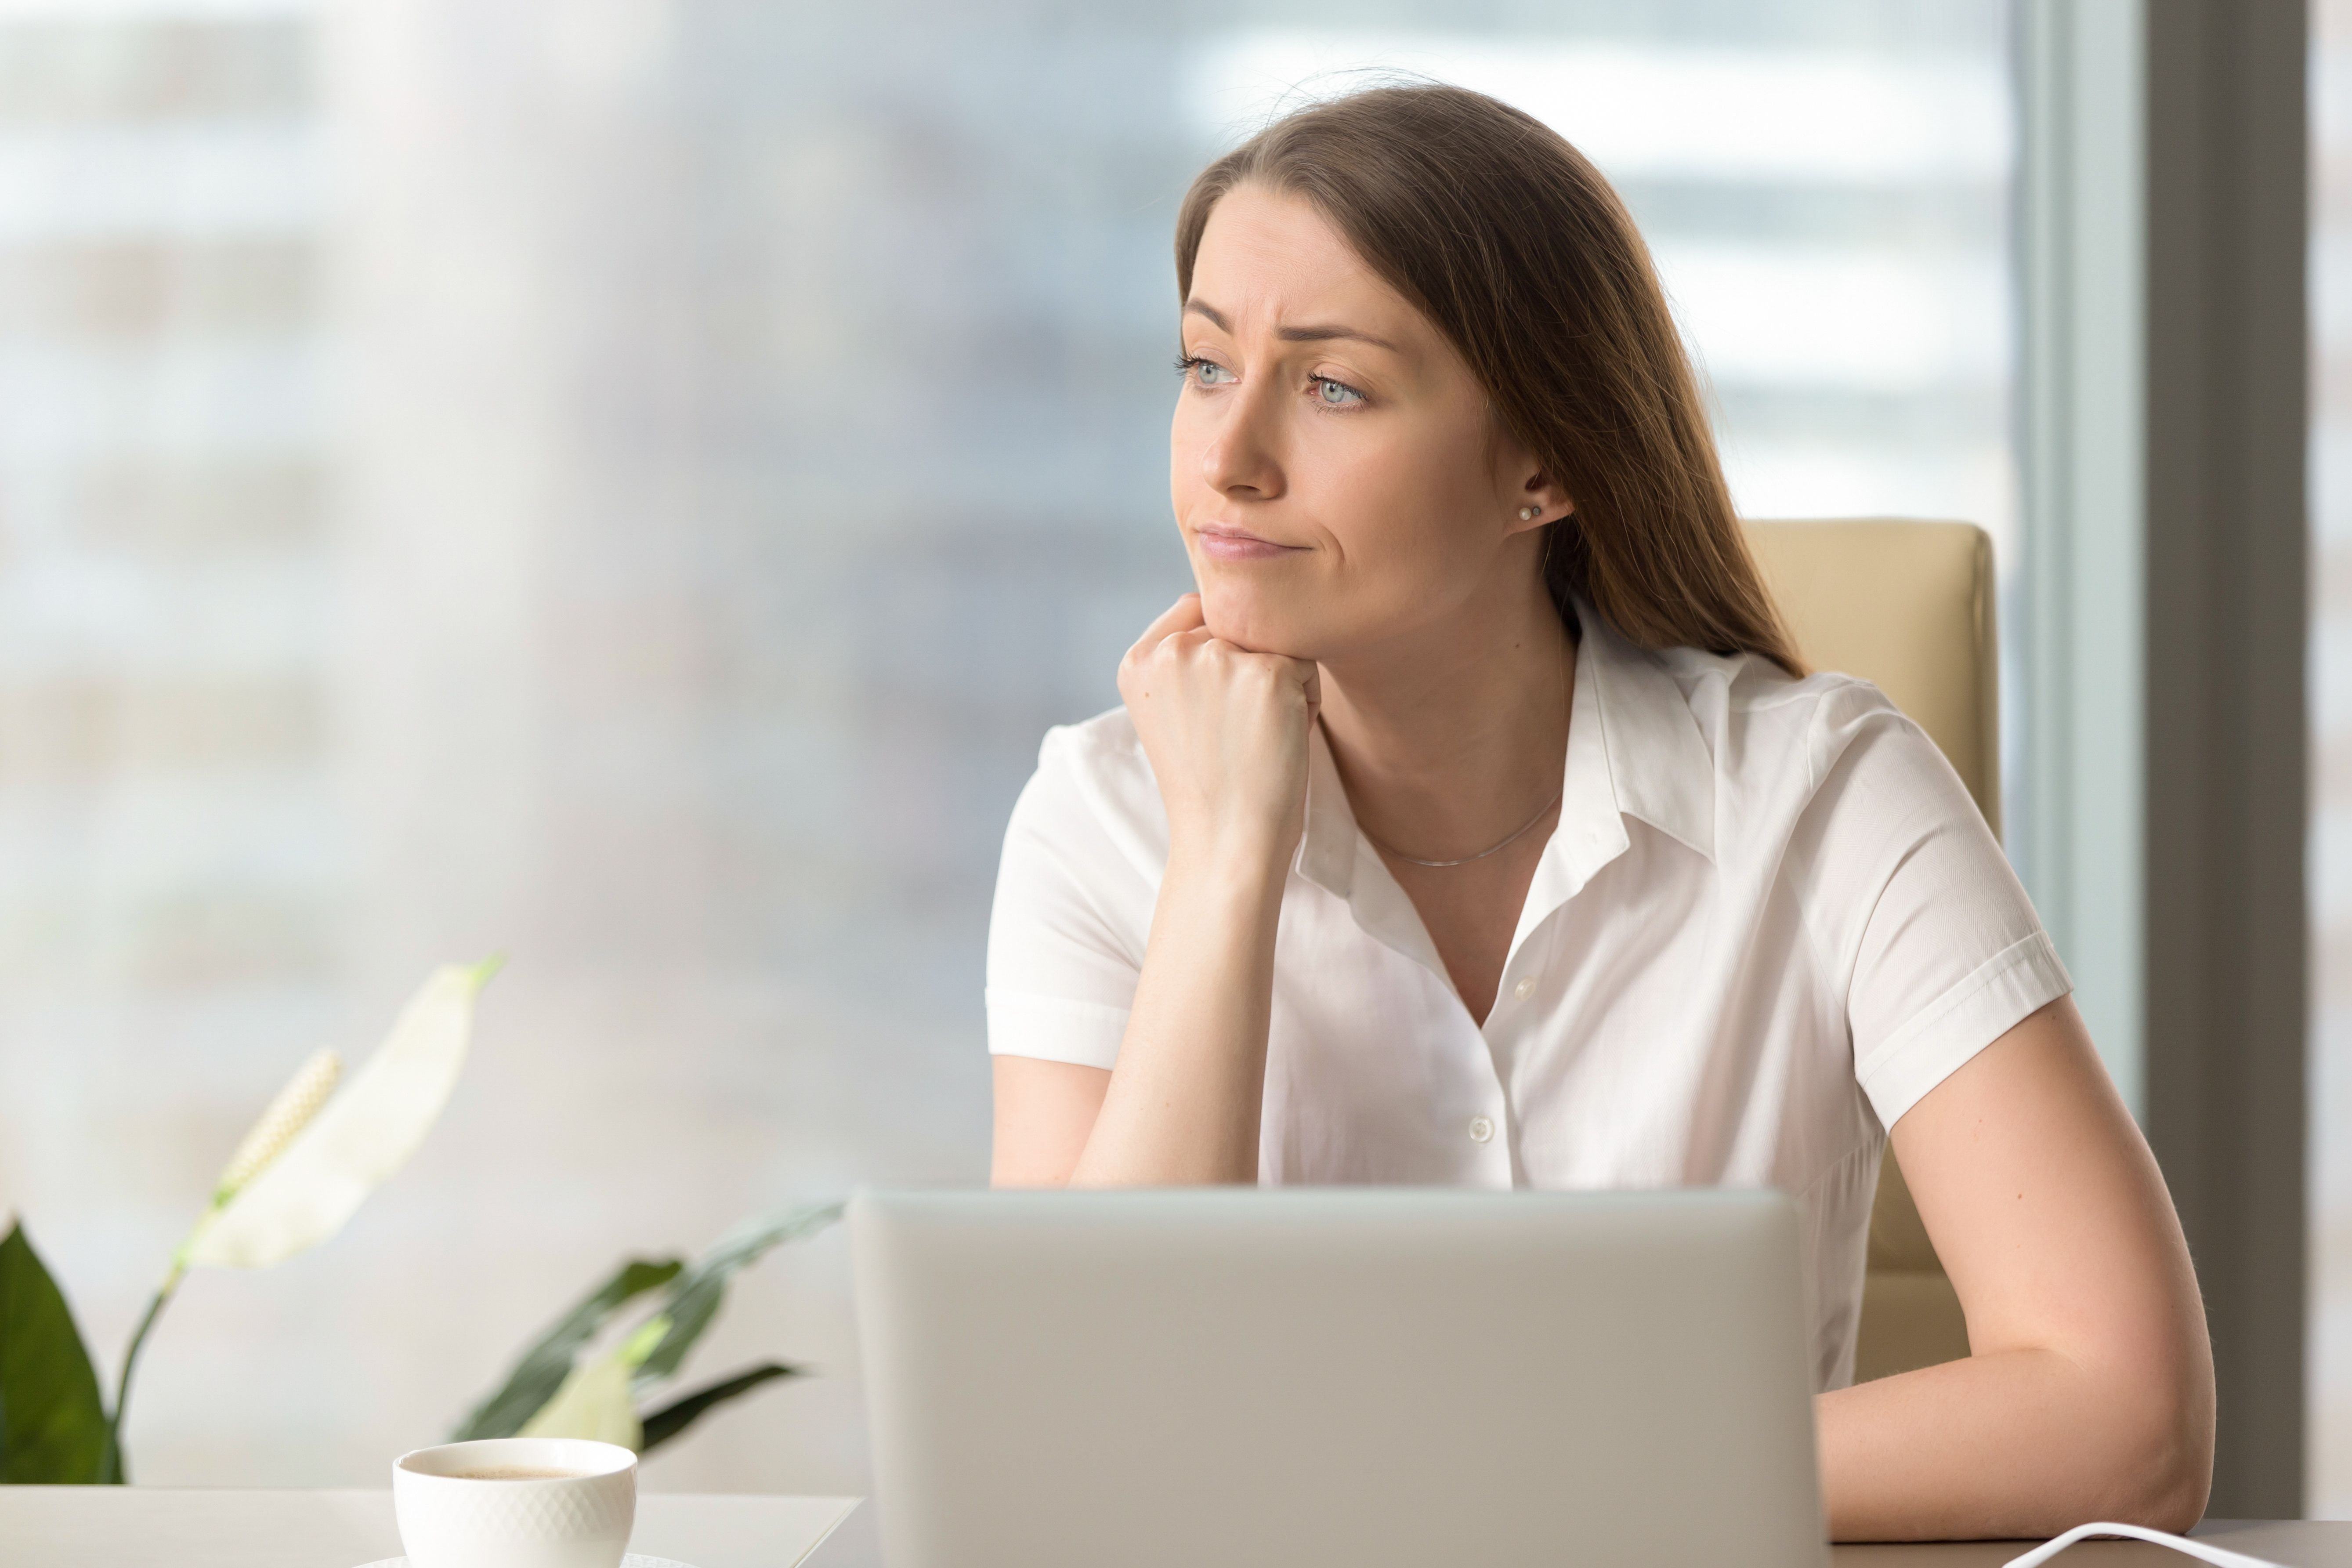 A woman in deep thought while using her laptop. | Source: Shutterstock